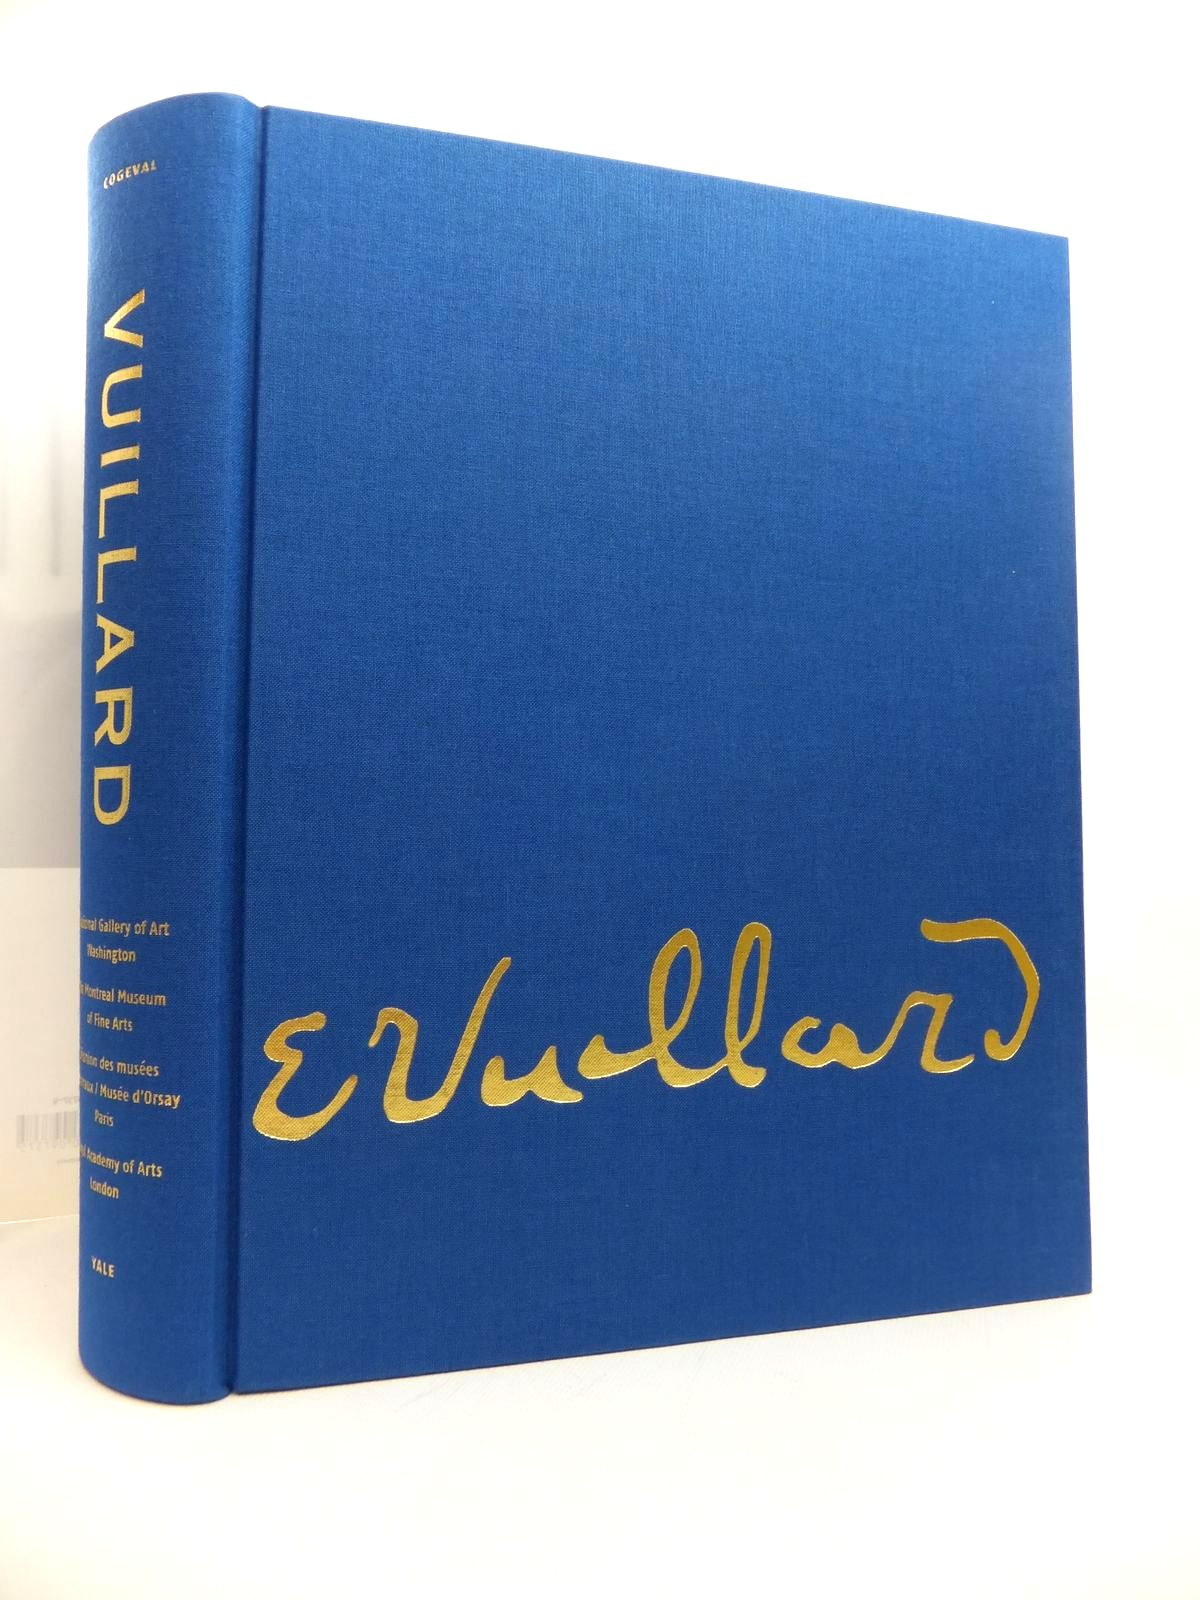 Photo of EDOUARD VUILLARD written by Cogeval, Guy<br />et al, illustrated by Vuillard, Edouard published by The Montreal Museum Of Fine Arts, The National Gallery Of Art, Washington, Yale University Press (STOCK CODE: 1814482)  for sale by Stella & Rose's Books